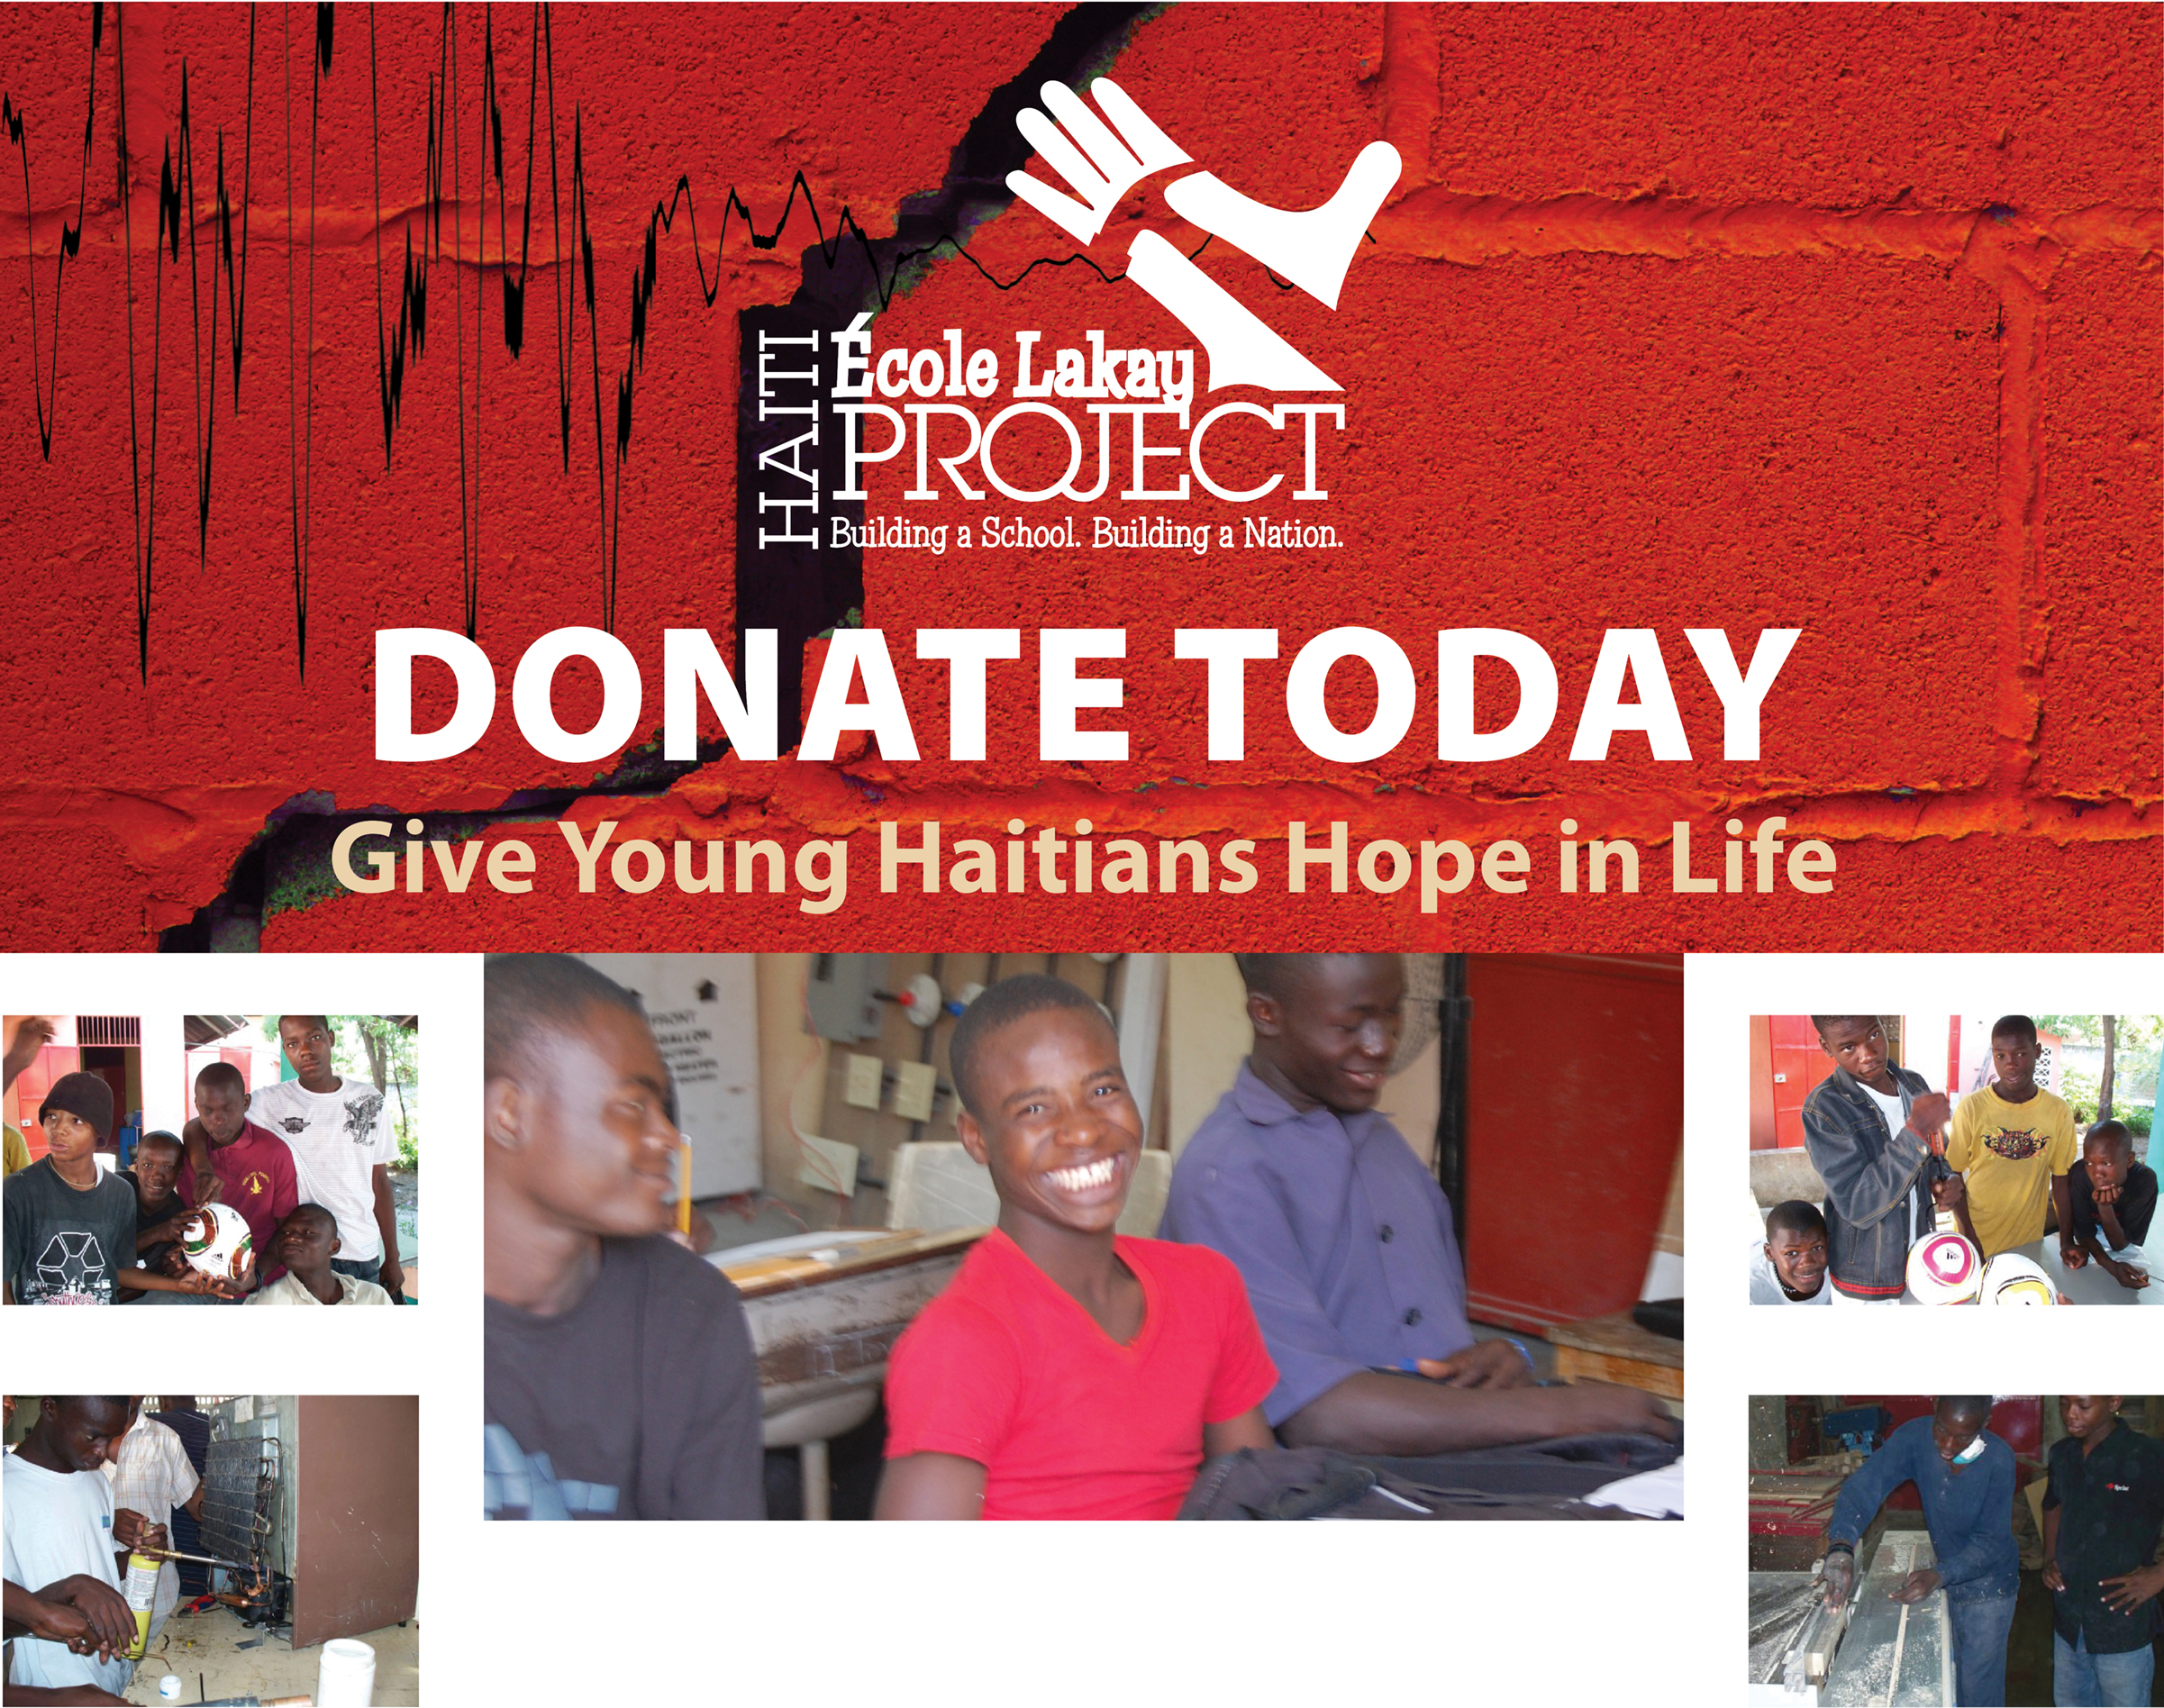 Donate today for the École Lakay rebuilding project